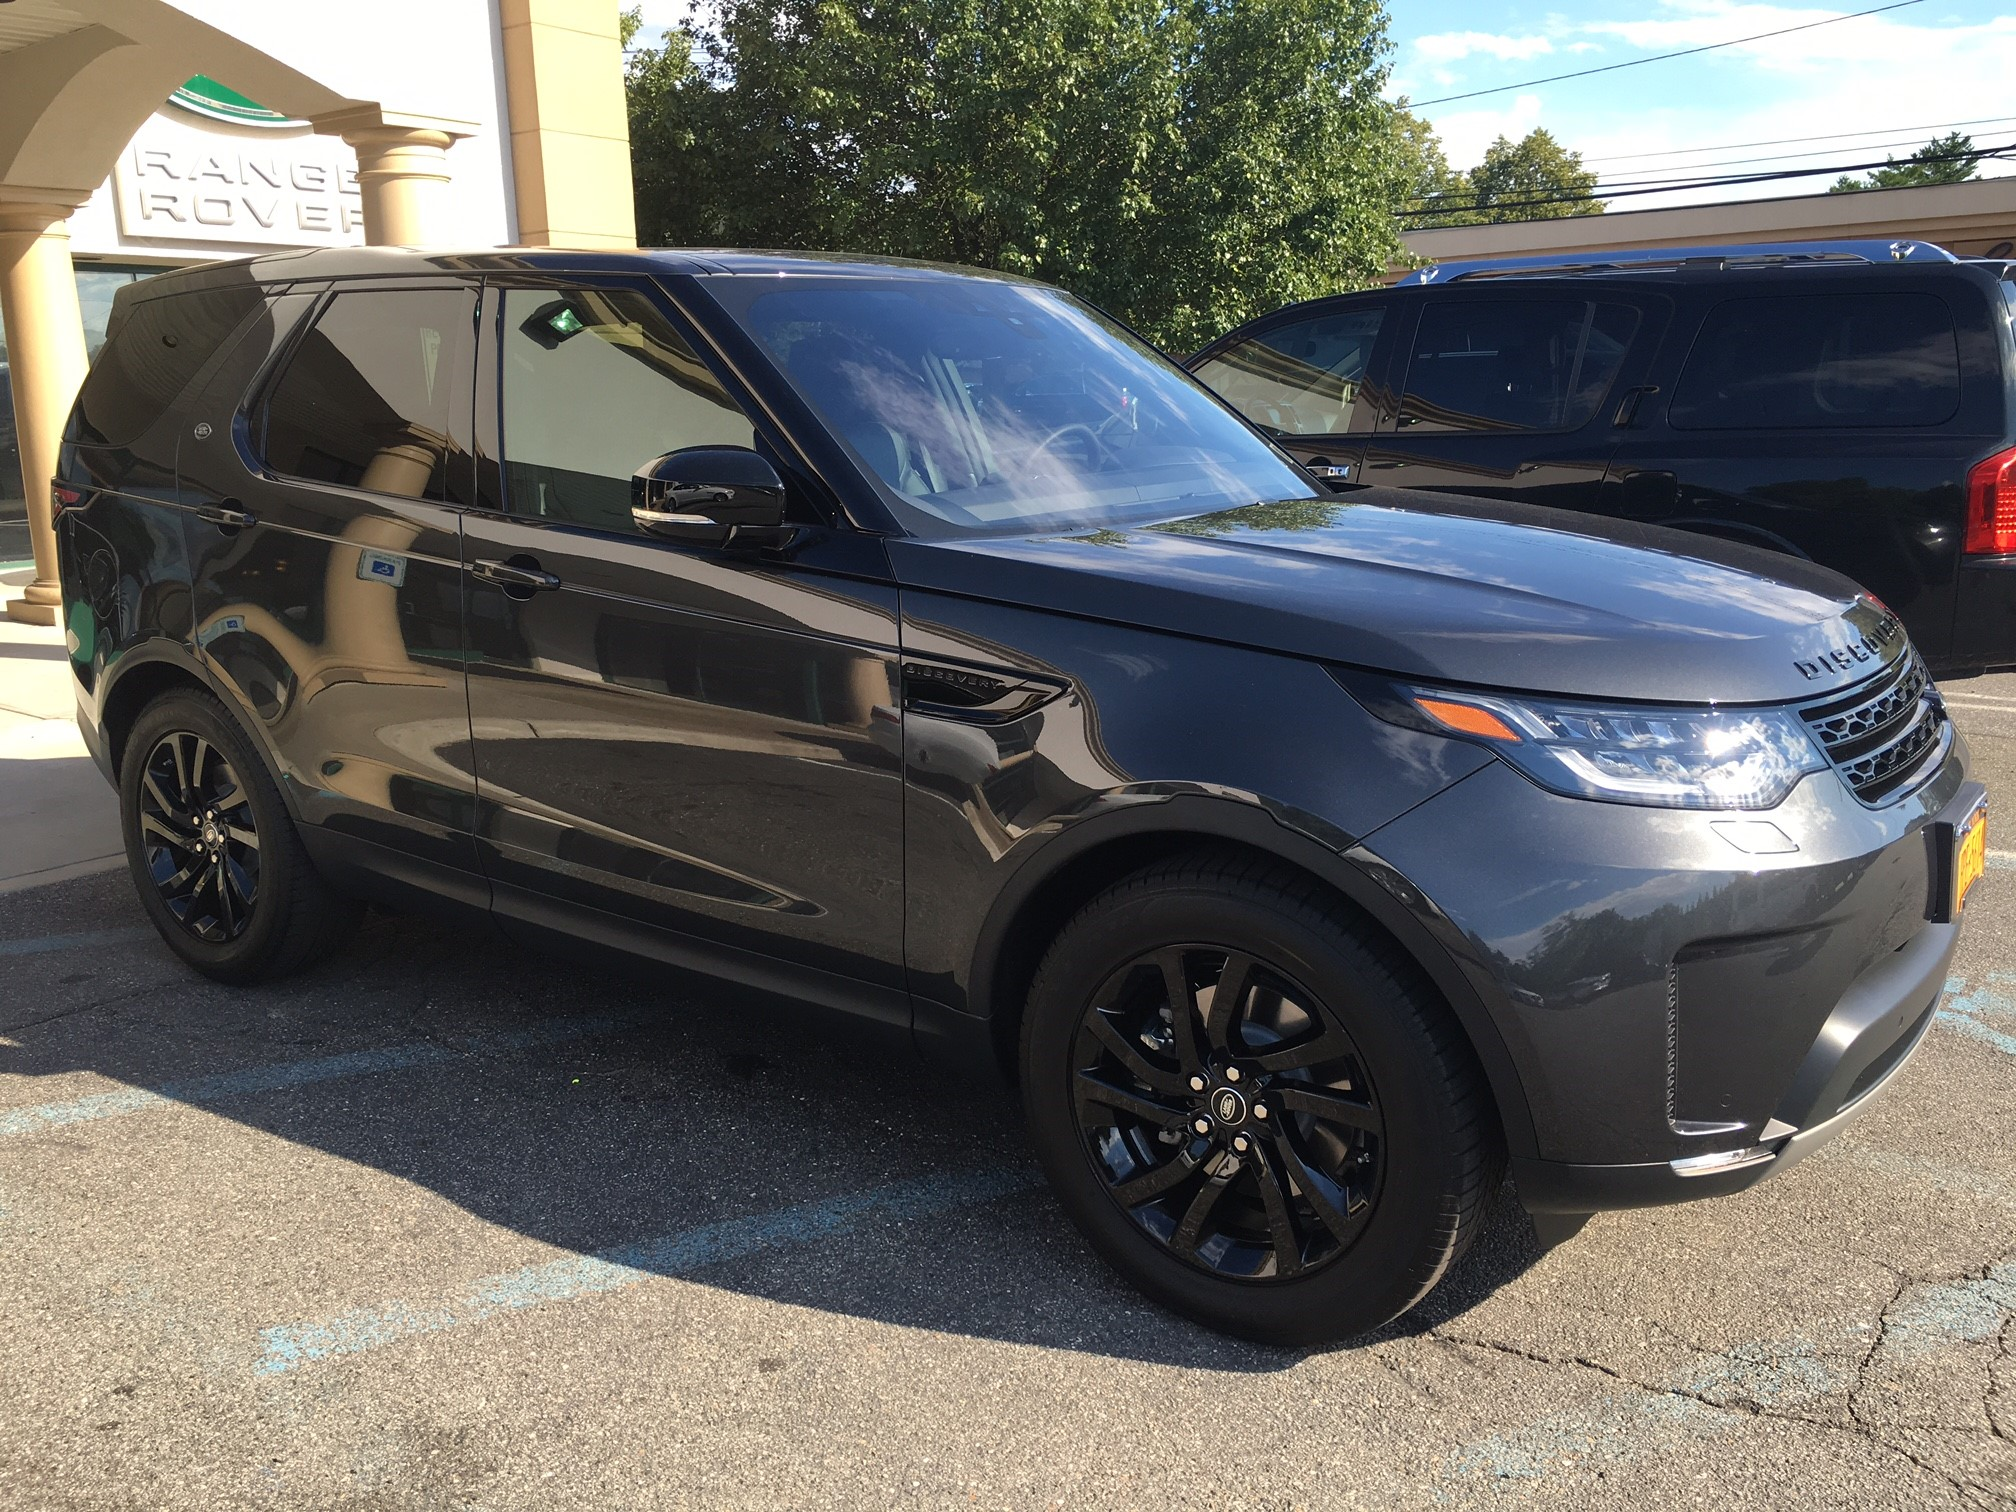 2017 Discovery.jpg